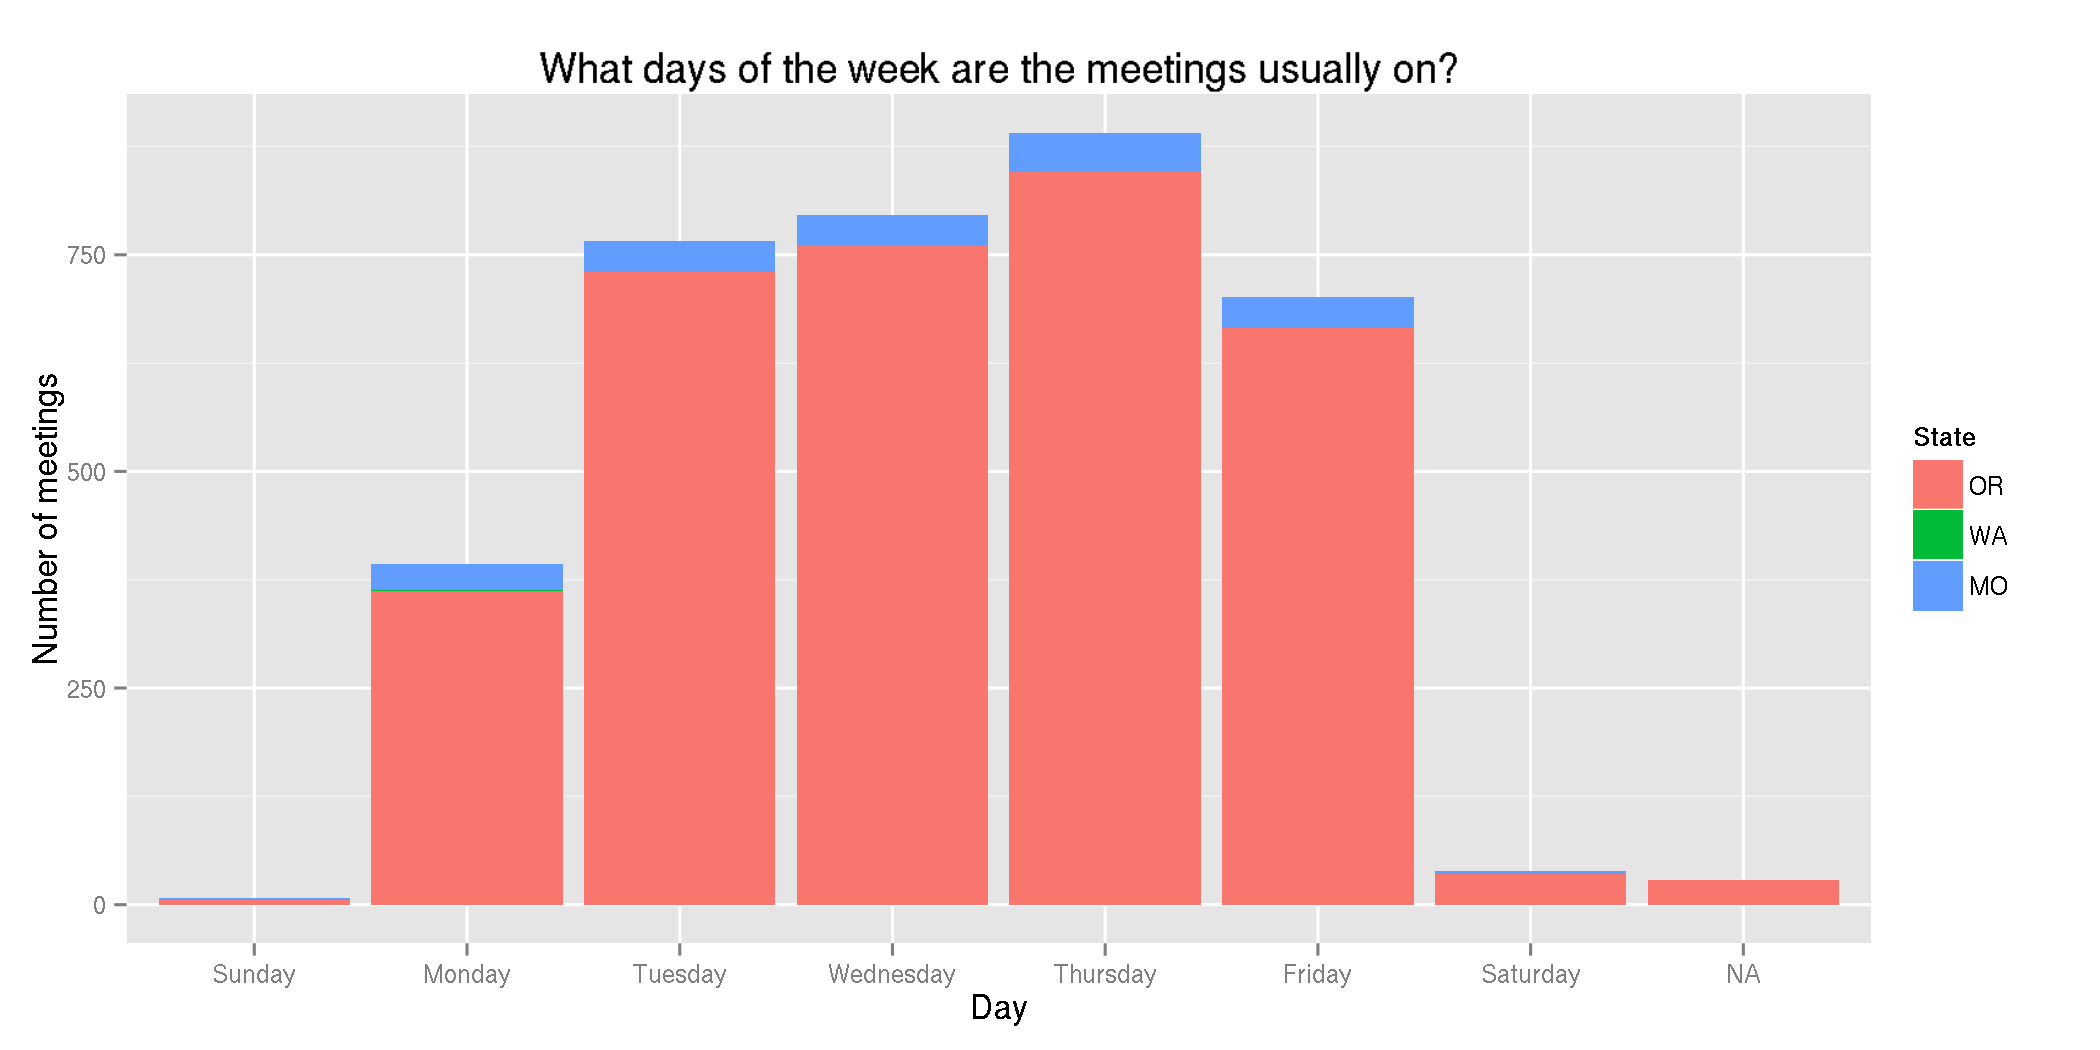 Public meetings by day of week